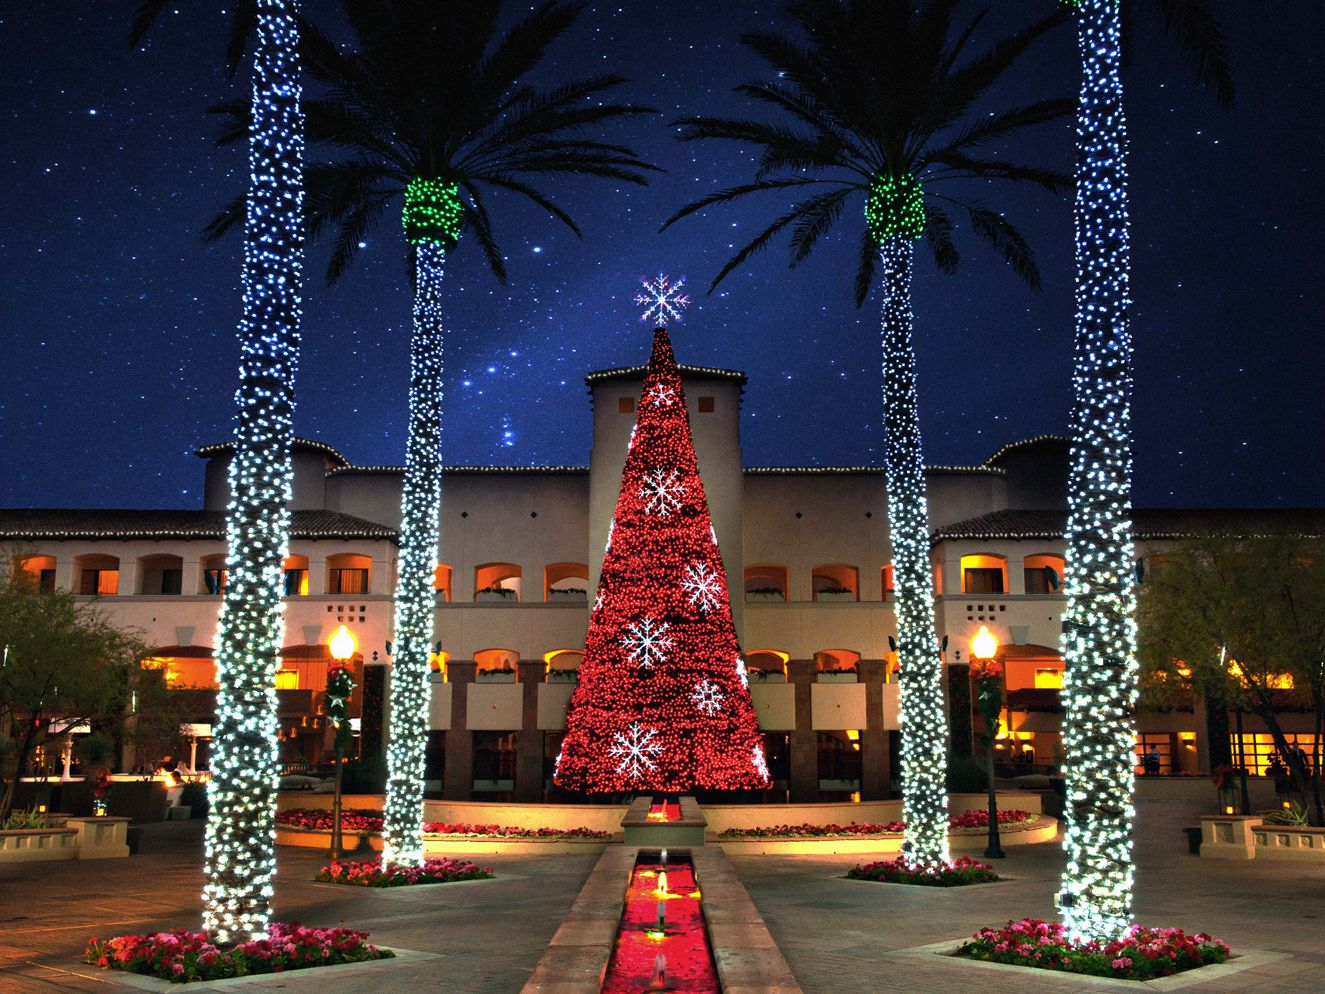 Christmas Activities In Chandler Az 2020 Things to Do for Christmas in the Greater Phoenix Area